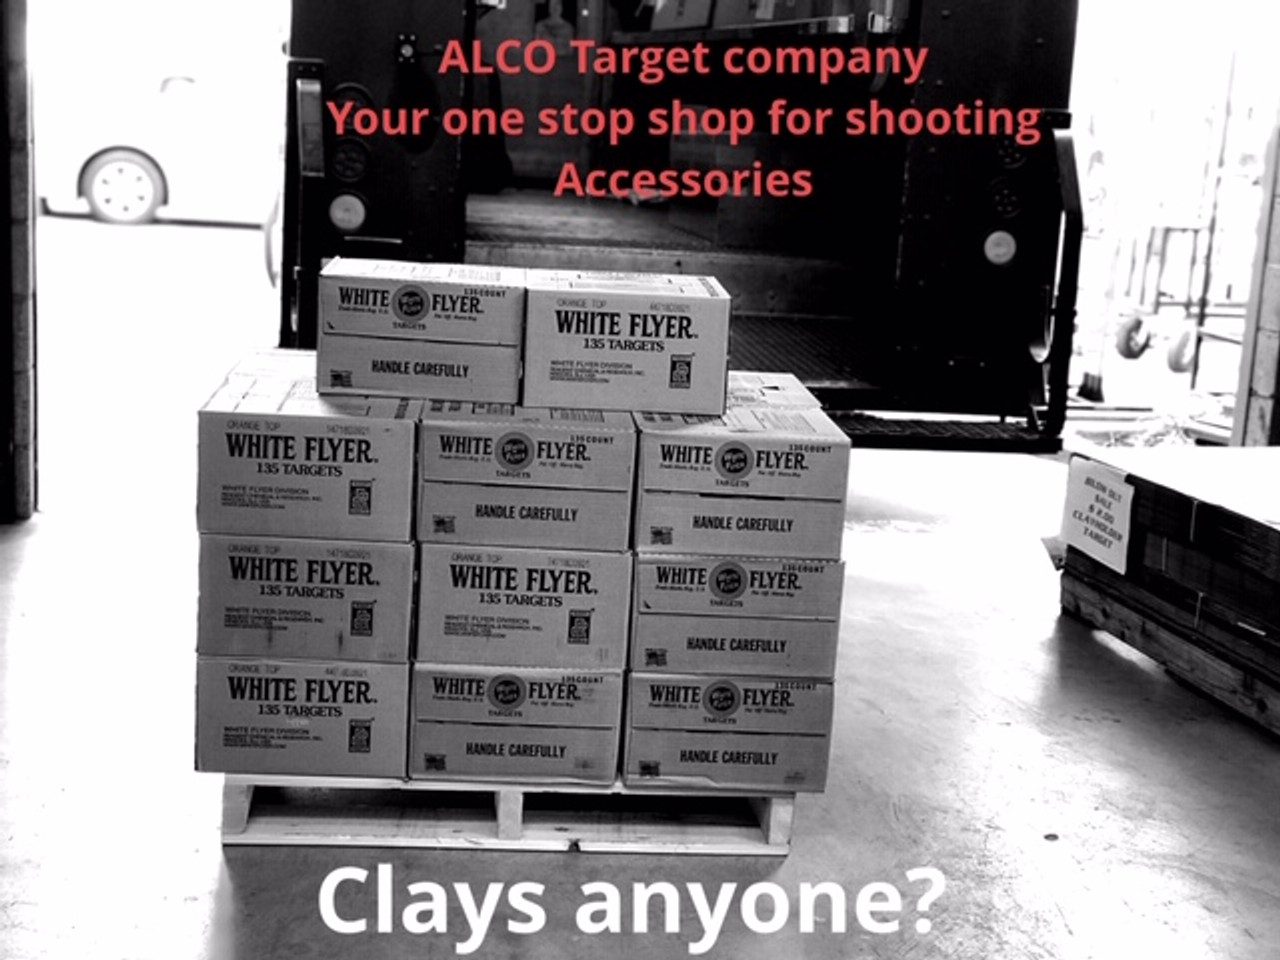 WHITE FLYER CLAY TARGETS 135 COUNT (IN STORE PURCHASE ONLY)